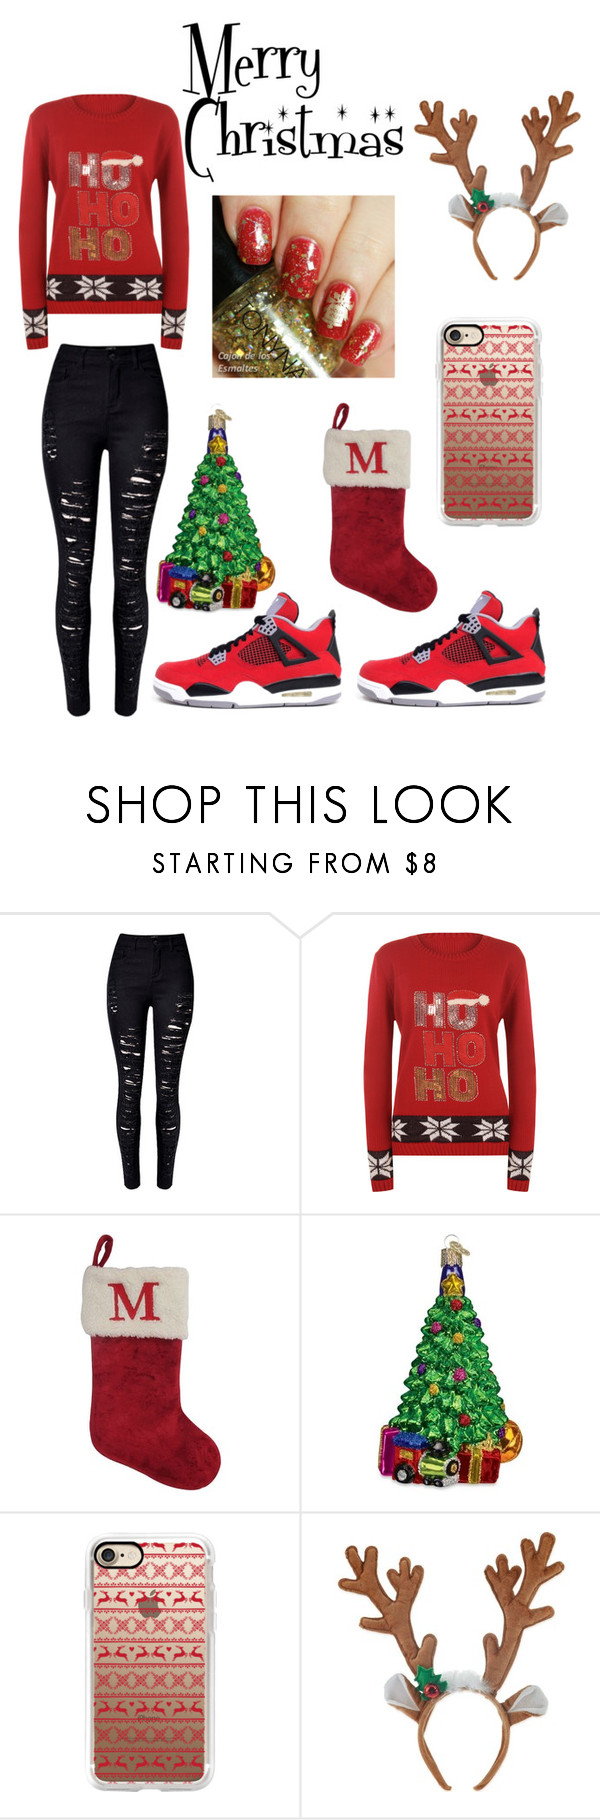 """MERRY CHRISTMAS: MCKENZIE"" by yoyoitzselena ❤ liked on Polyvore featuring WithChic, WearAll, St. Nicholas Square, Freaker, Old World Christmas and Casetify"